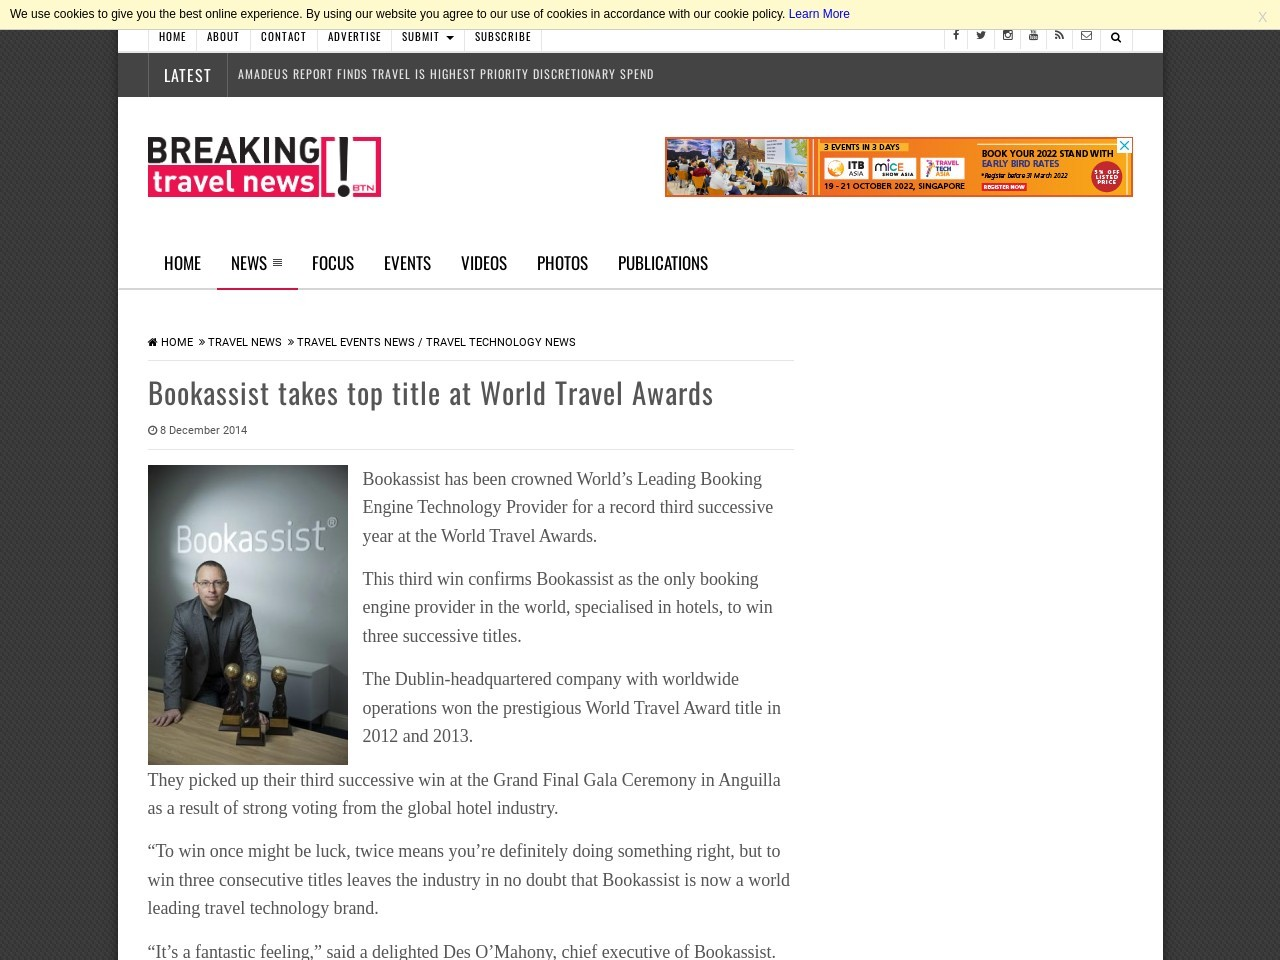 Bookassist takes top title at World Travel Awards | News …